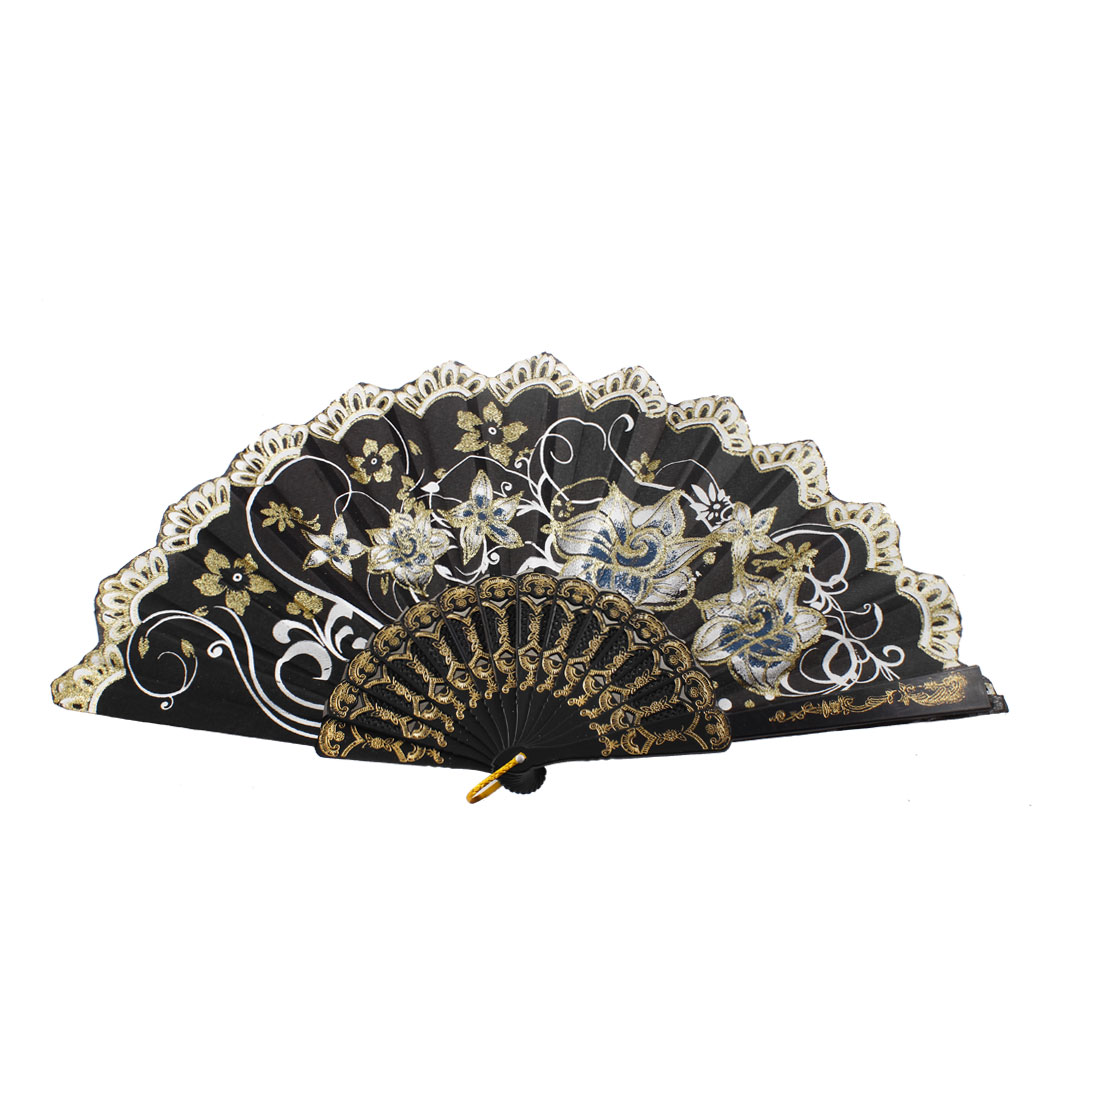 Hollow Out Frame Glittery Powder Accent Floral Print Summer Hand Fan Black